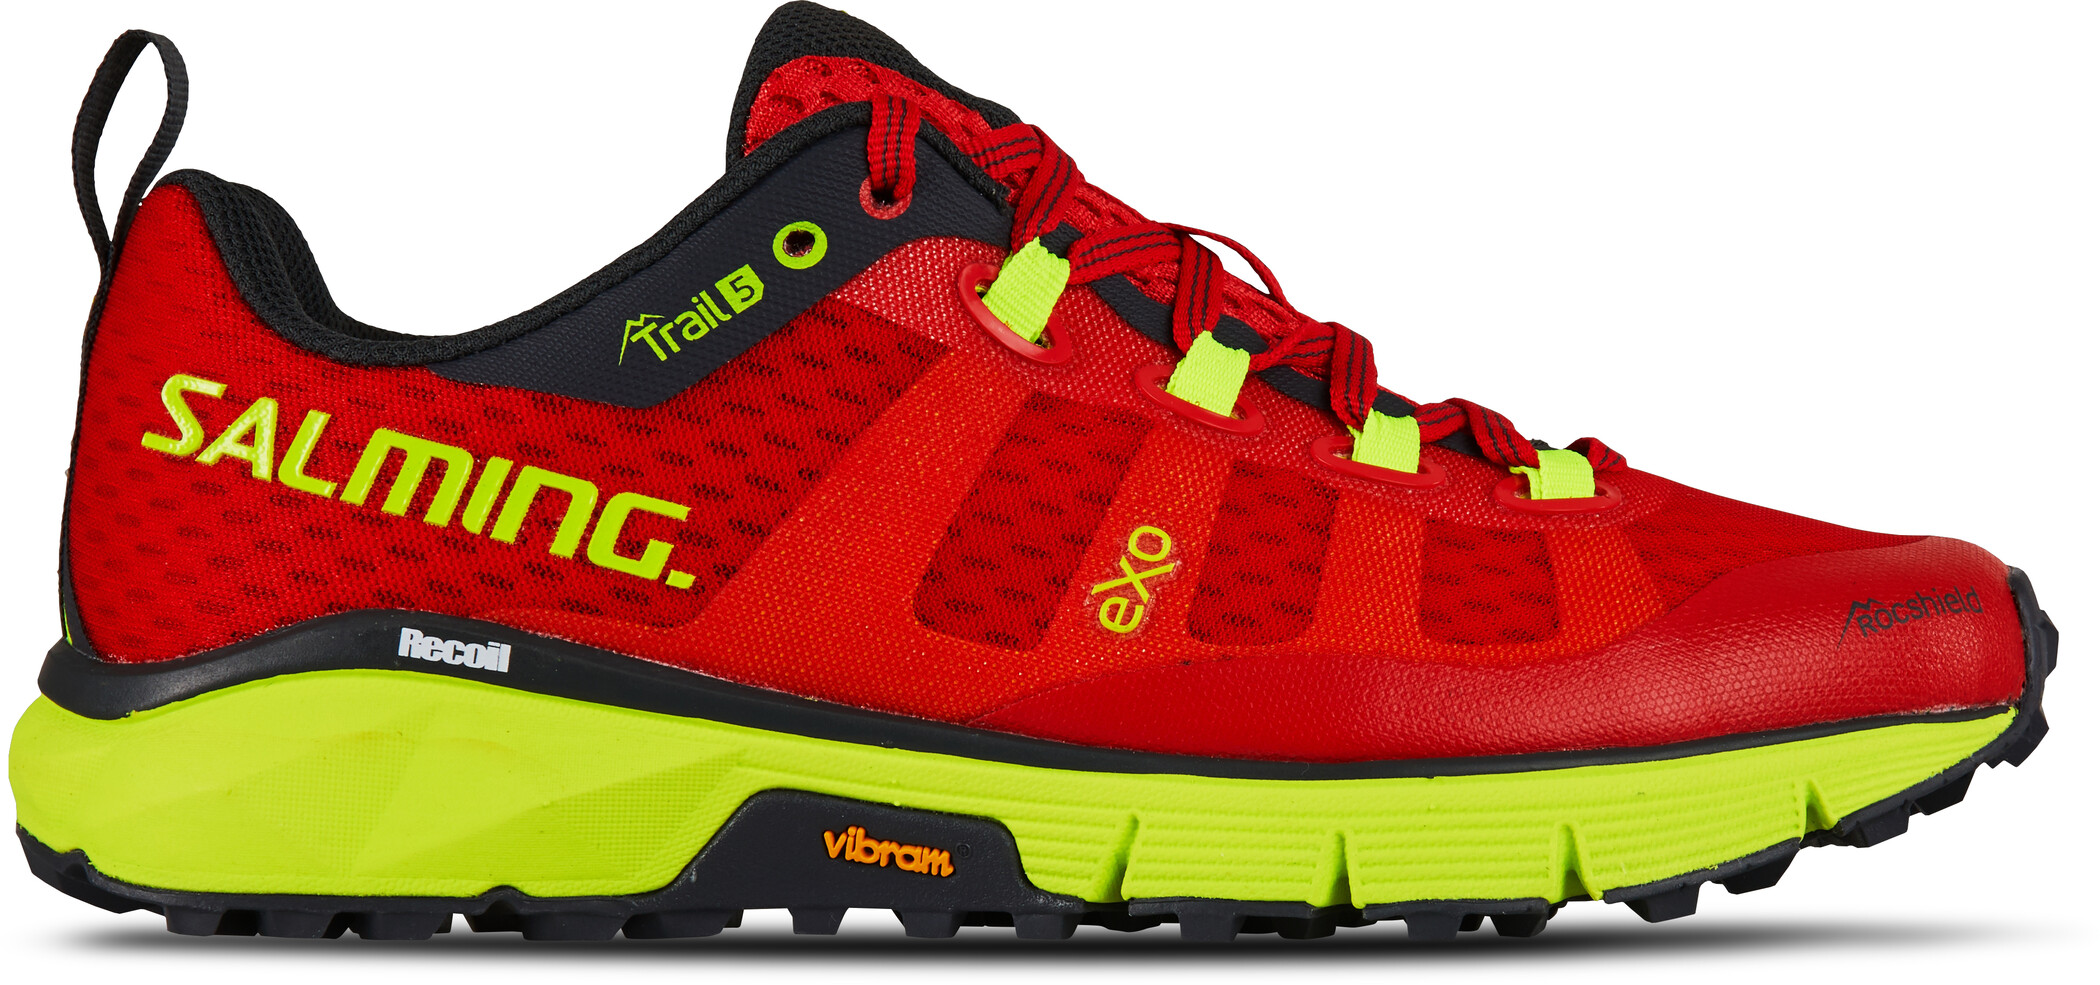 Salming Trail 5 Sko Damer, poppy red/safety yellow (2019) | Shoes and overlays